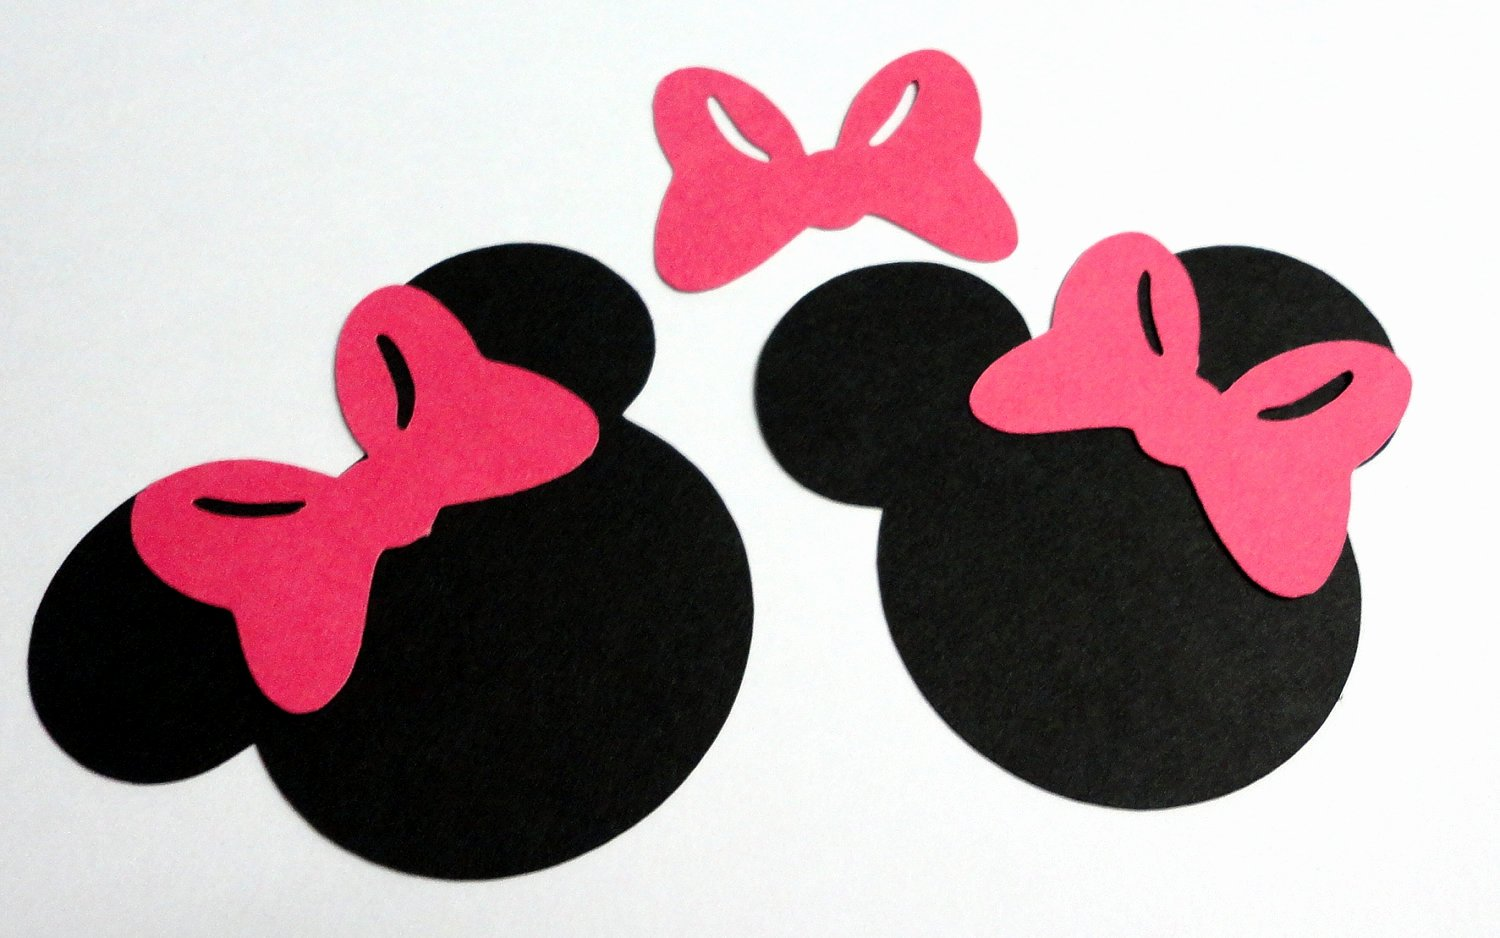 Minnie Mouse Head Silhouette Printable Unique 30 2 5 Minnie Mouse Head Silhouettes Black Cutouts